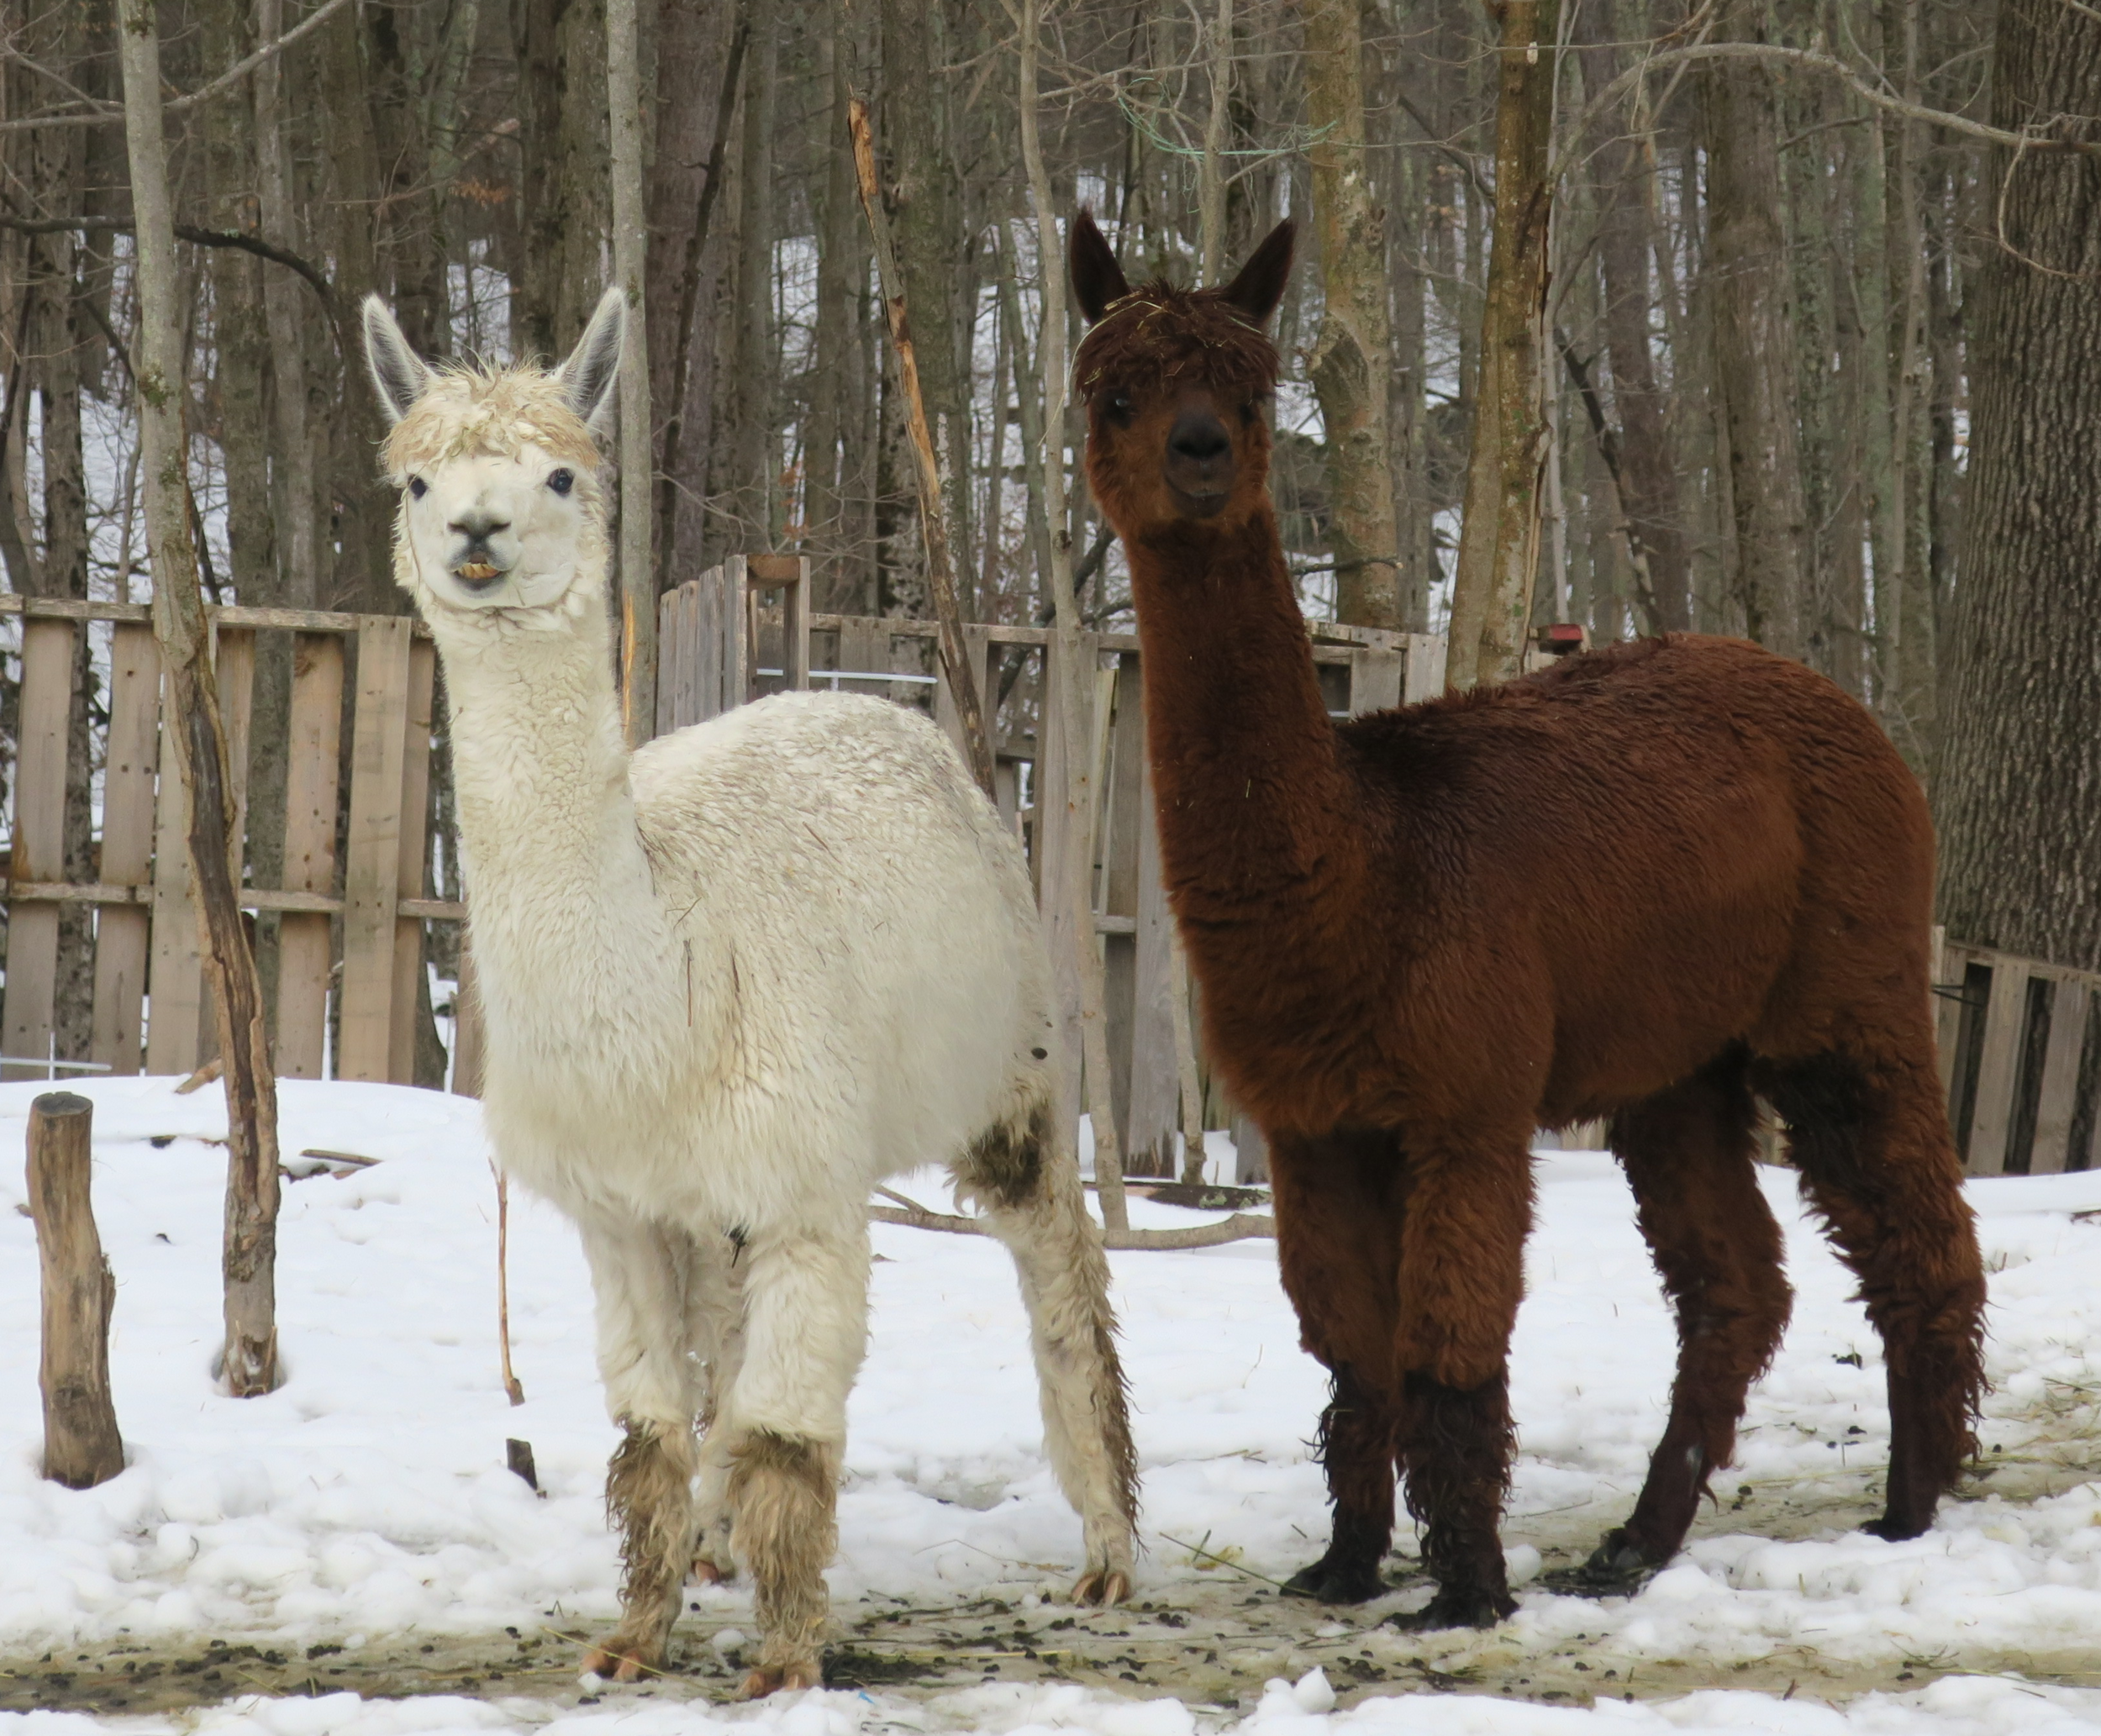 The alpaca brothers, Mark and Roger